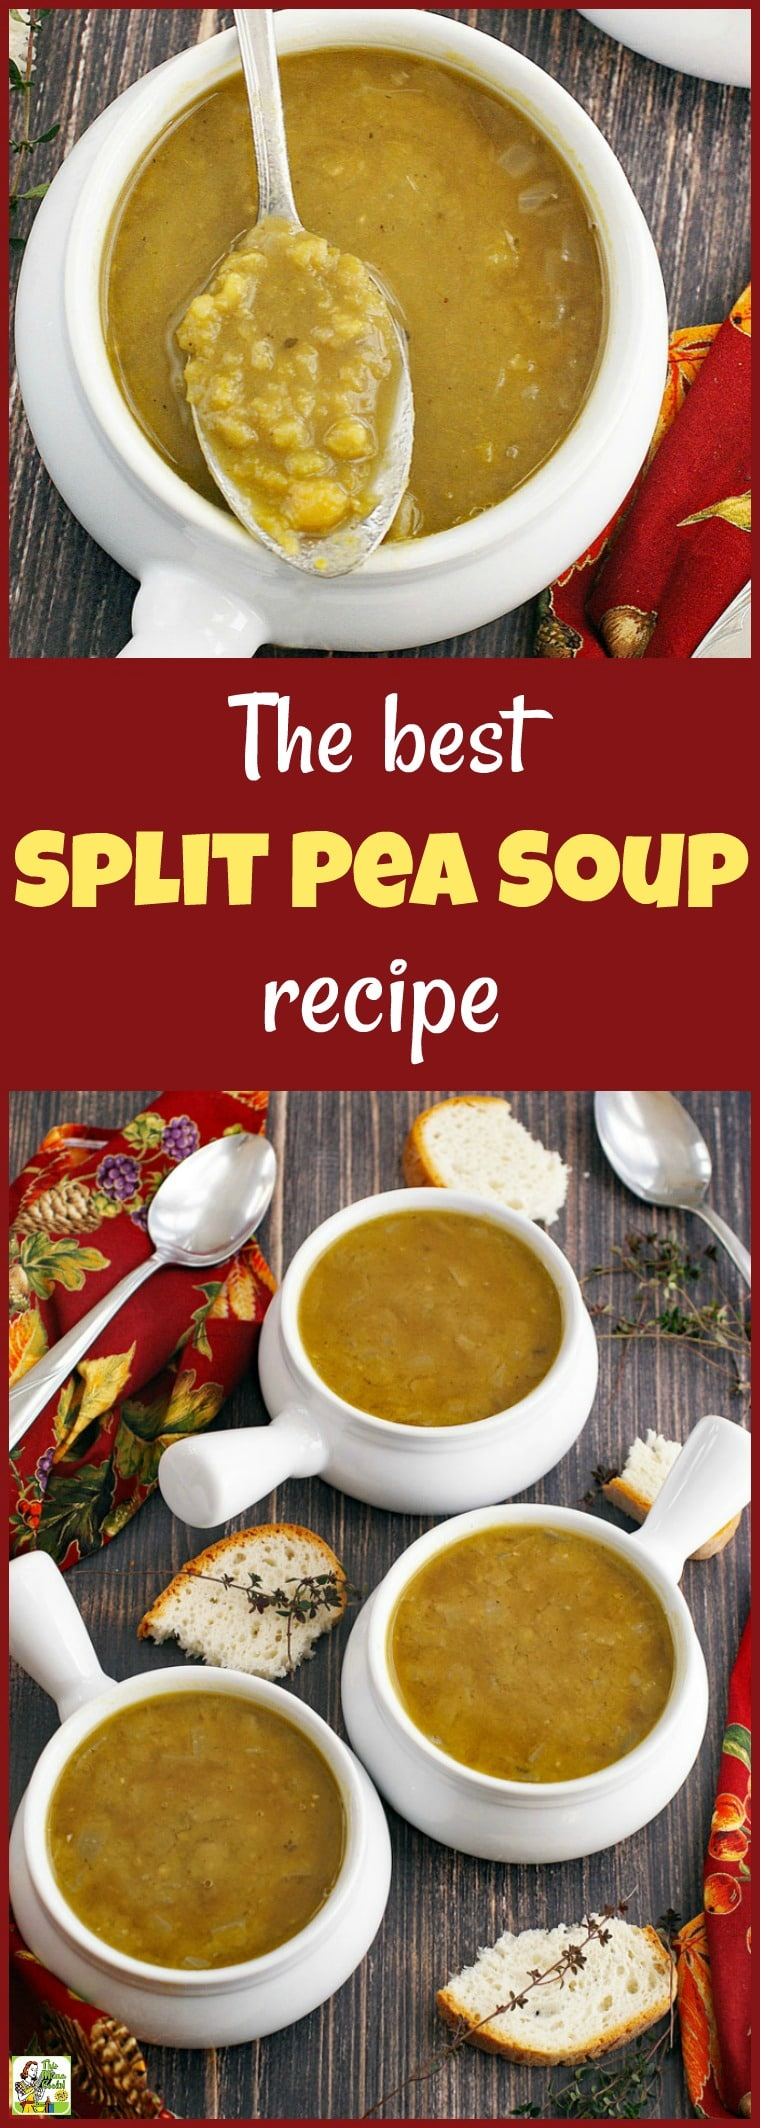 Learn how to make this Best Split Pea Soup recipe for a busy weeknight. This pea soup recipe that can be made in about an hour. Make up a double batch to freeze and heat up in your slow cooker or Crock-Pot. Can be made as a vegetarian or vegan soup. #recipe #easy #recipeoftheday #healthyrecipes #glutenfree #easyrecipes #soup #peasoup #vegetarian #vegan